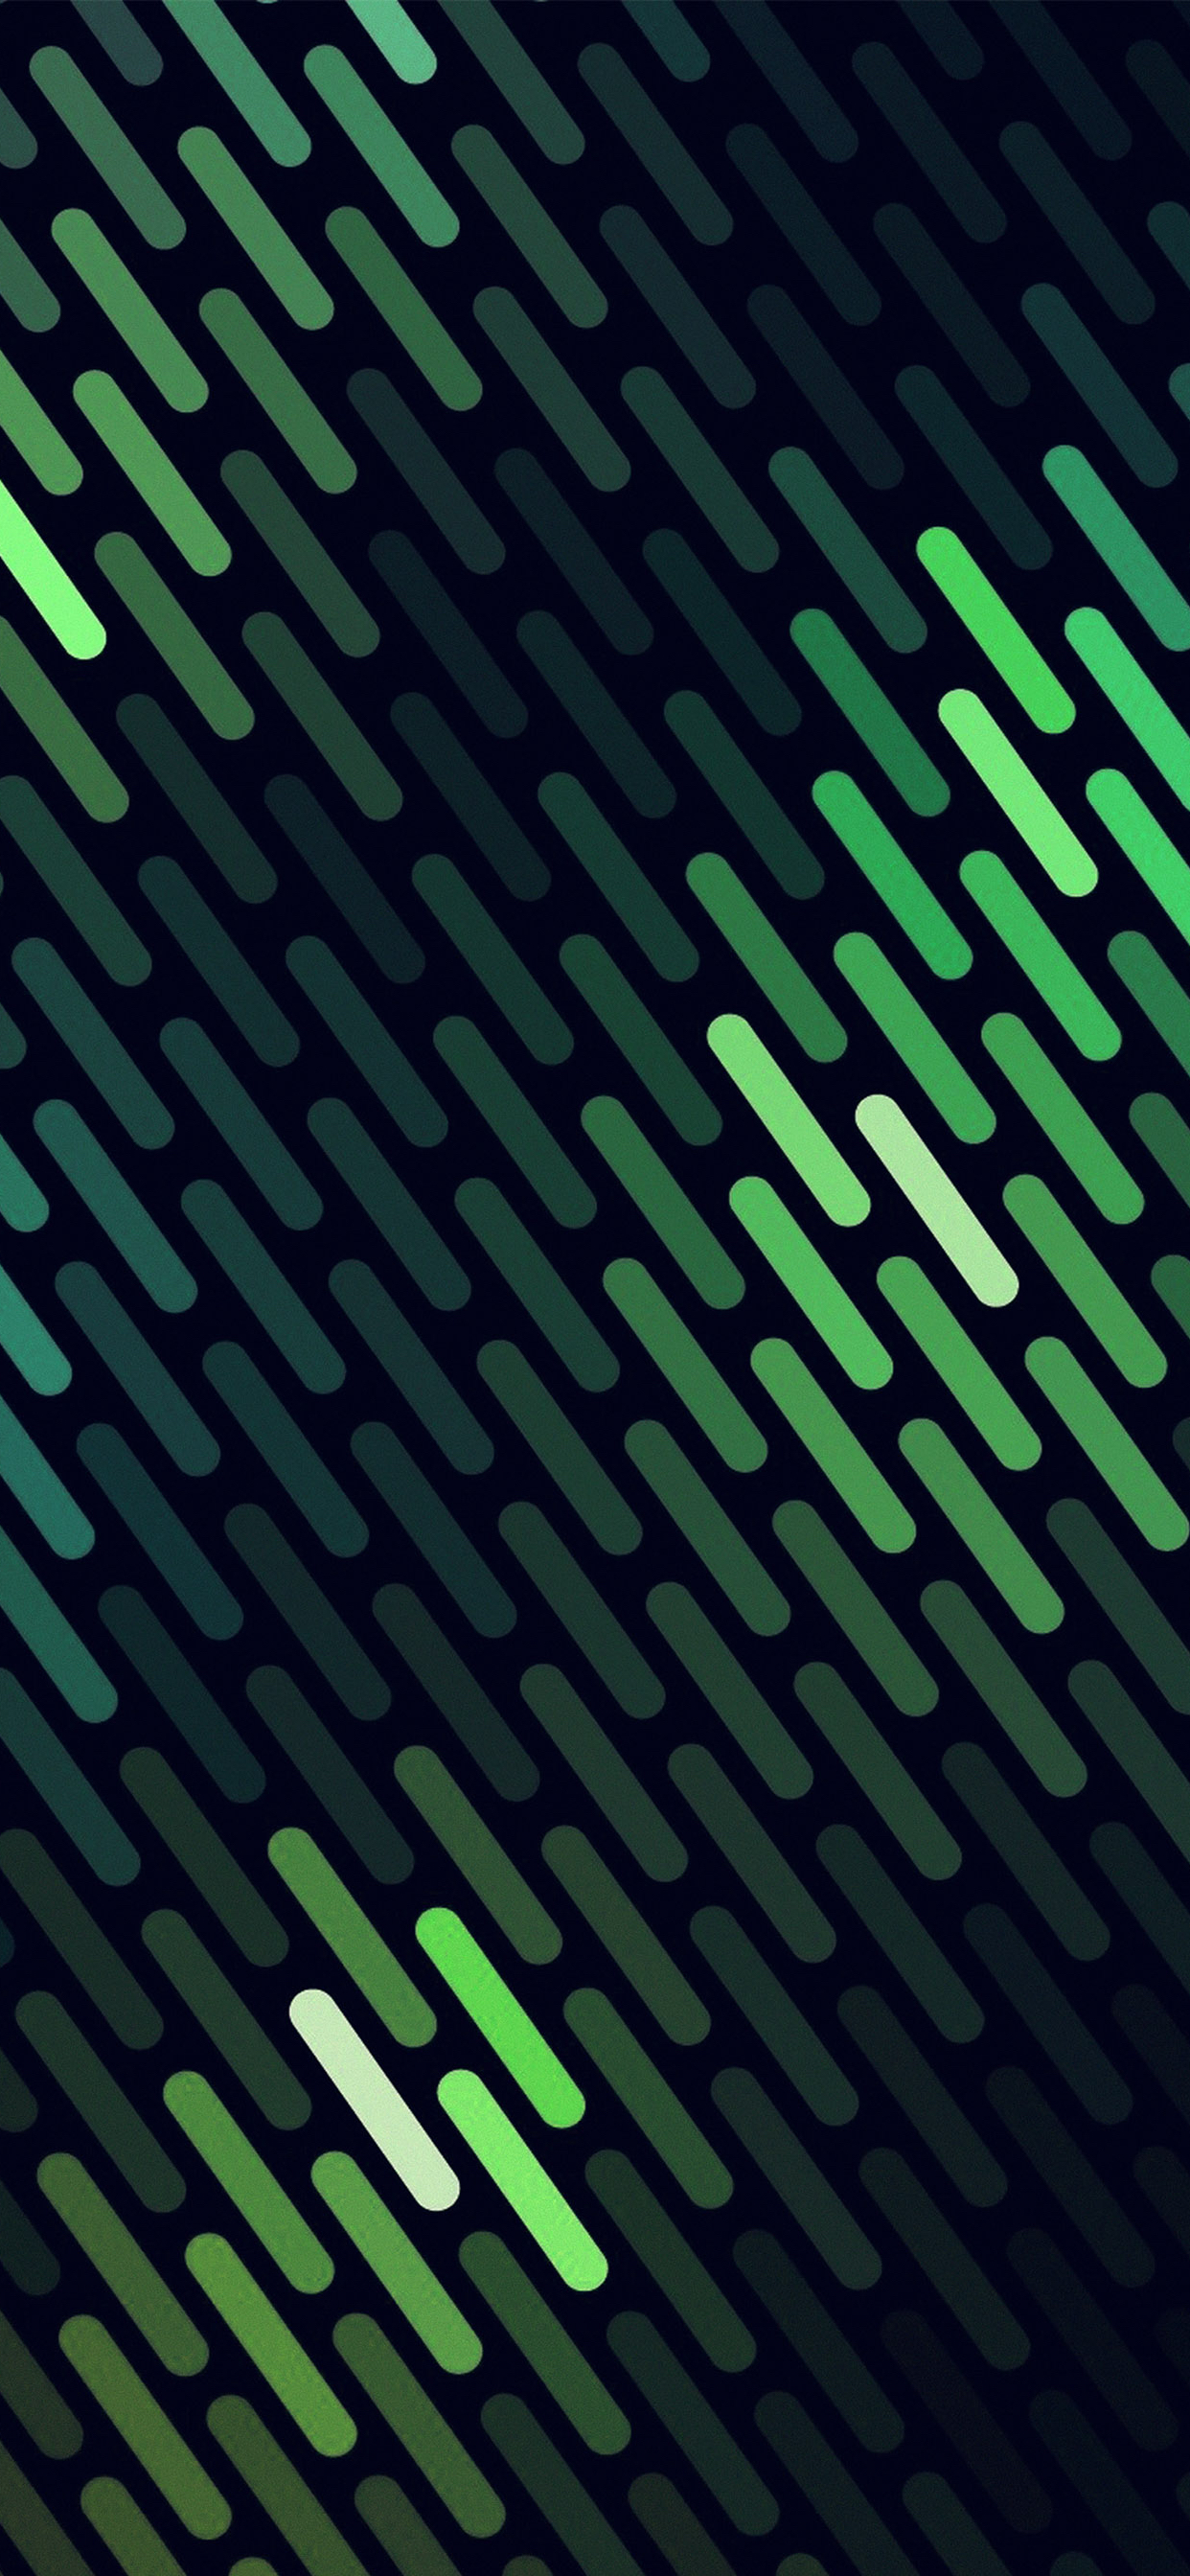 iPhone wallpaper green dots lines Fonds d'écran iPhone du 24/10/2018